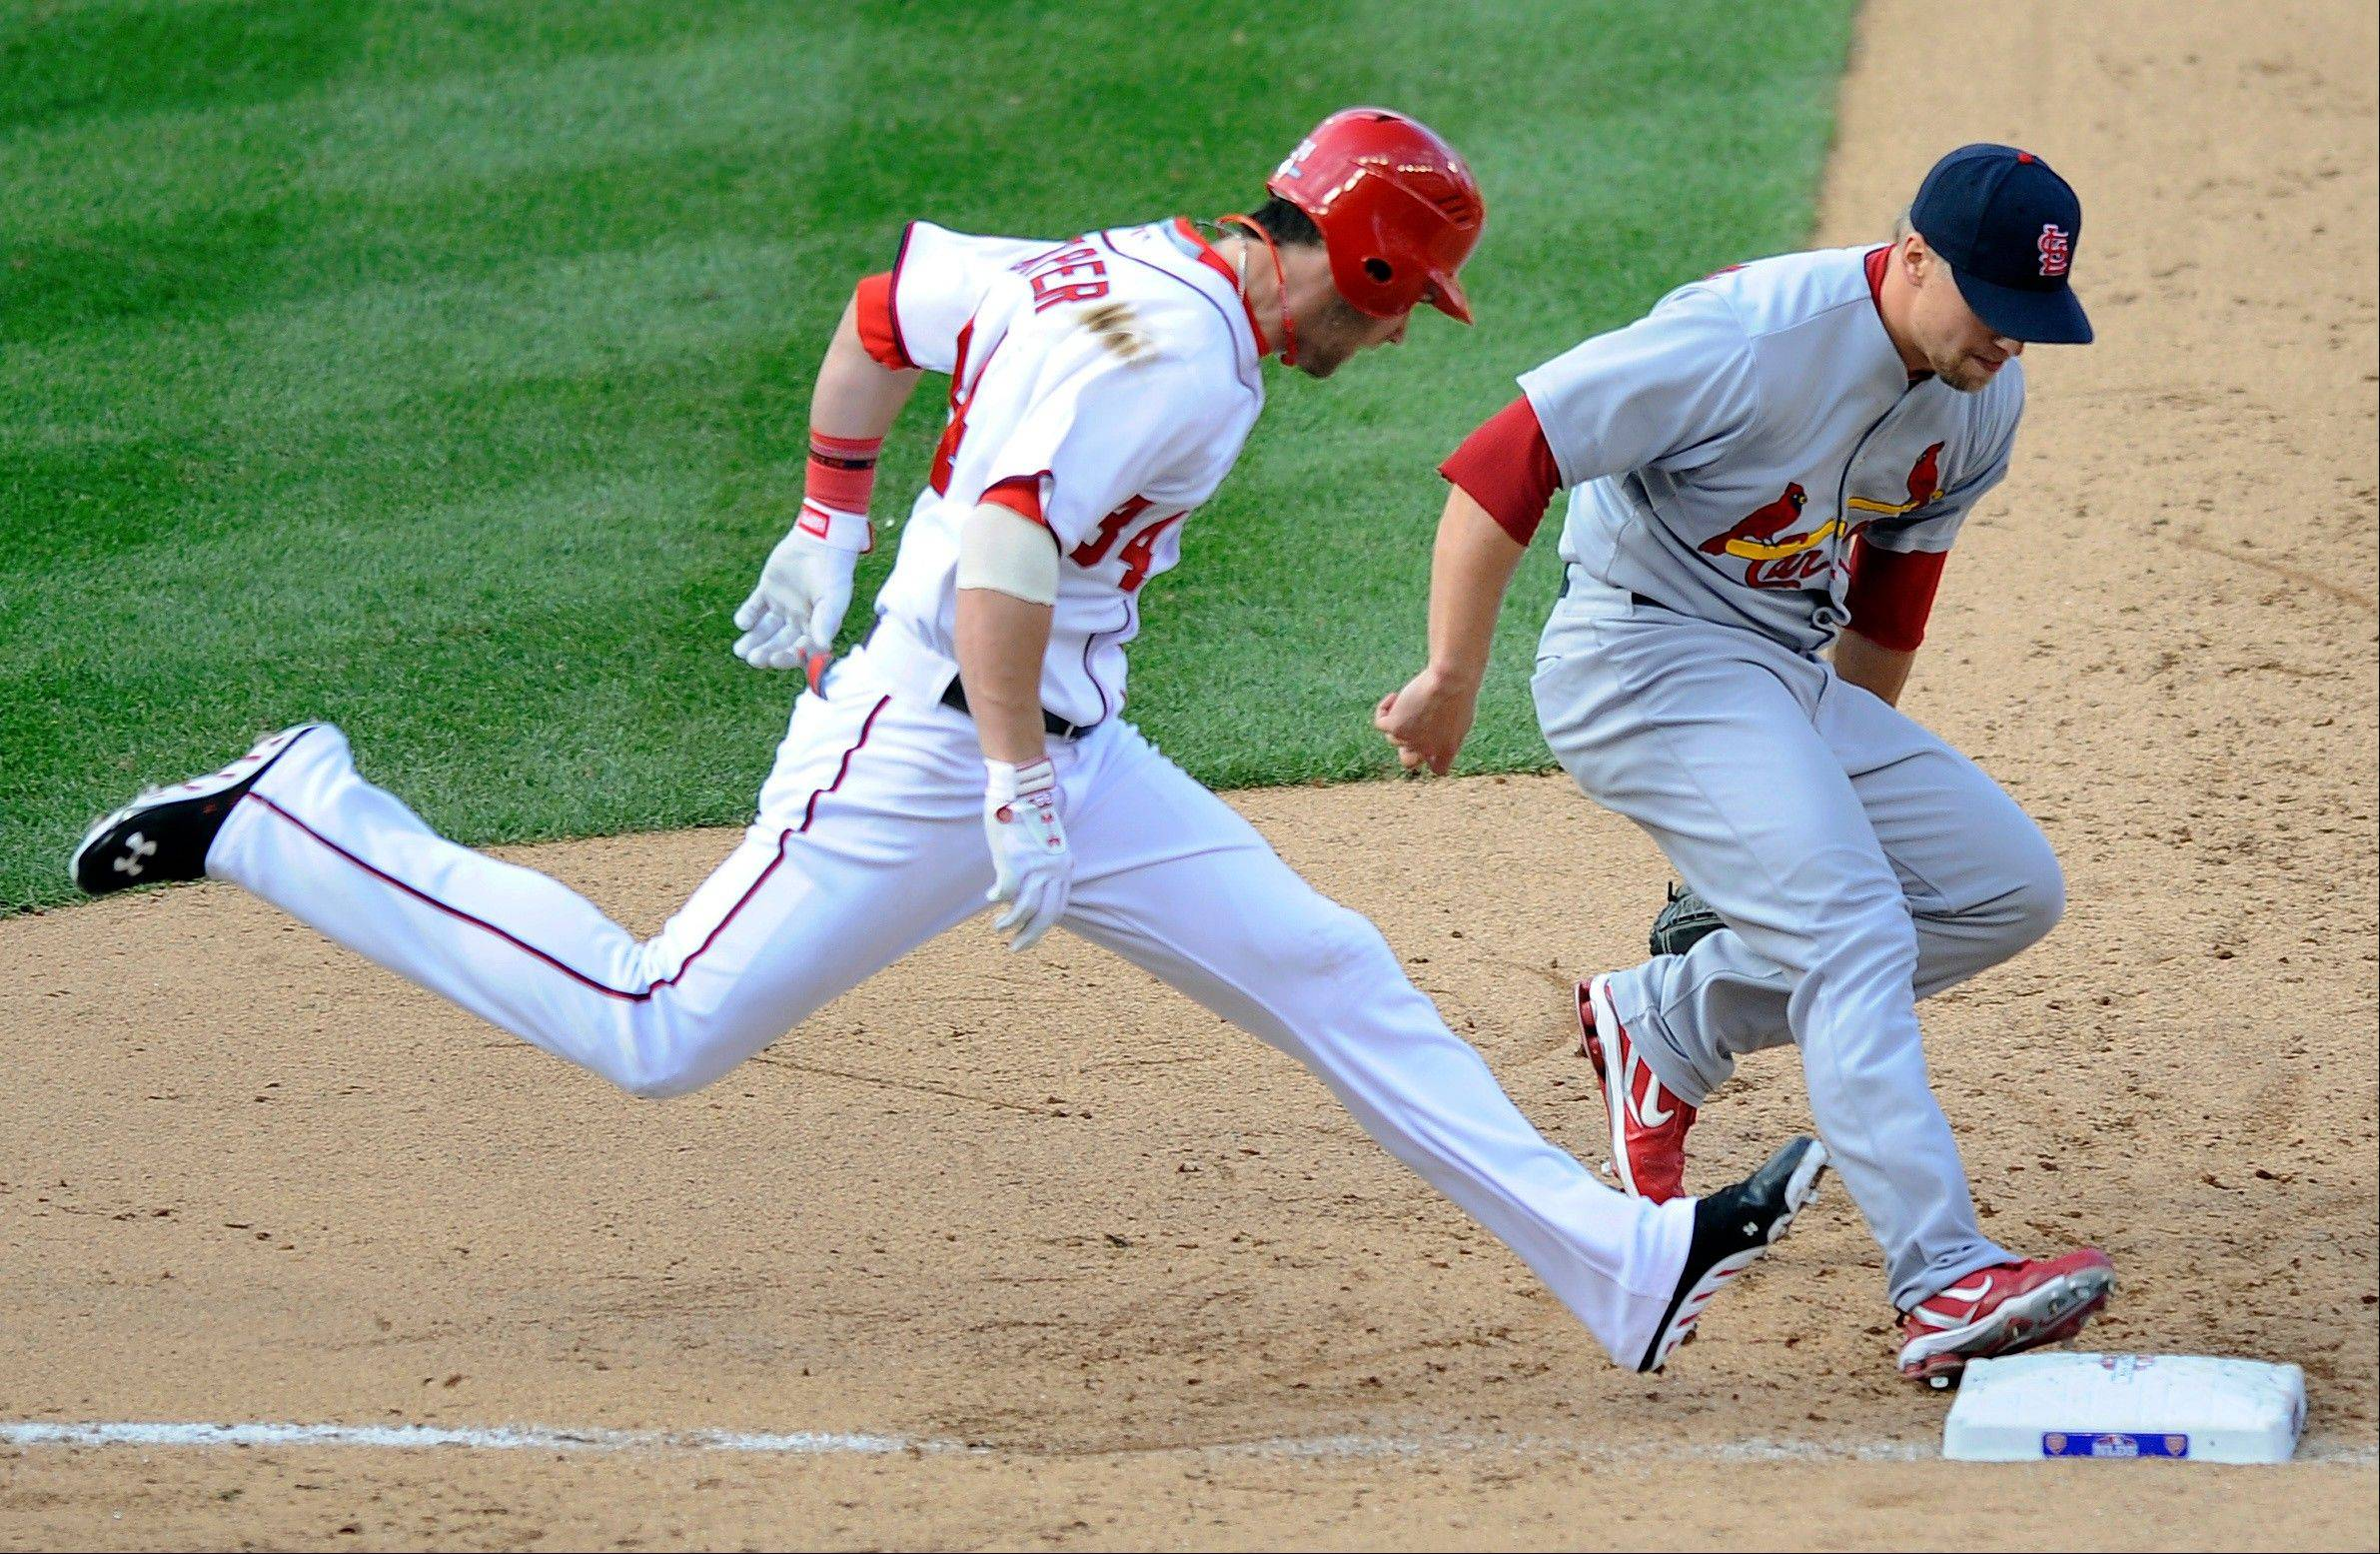 St. Louis Cardinals relief pitcher Trevor Rosenthal beats the Washington Nationals' Bryce Harper to first base for an out Wednesday during the seventh inning of Game 3 in Washington.